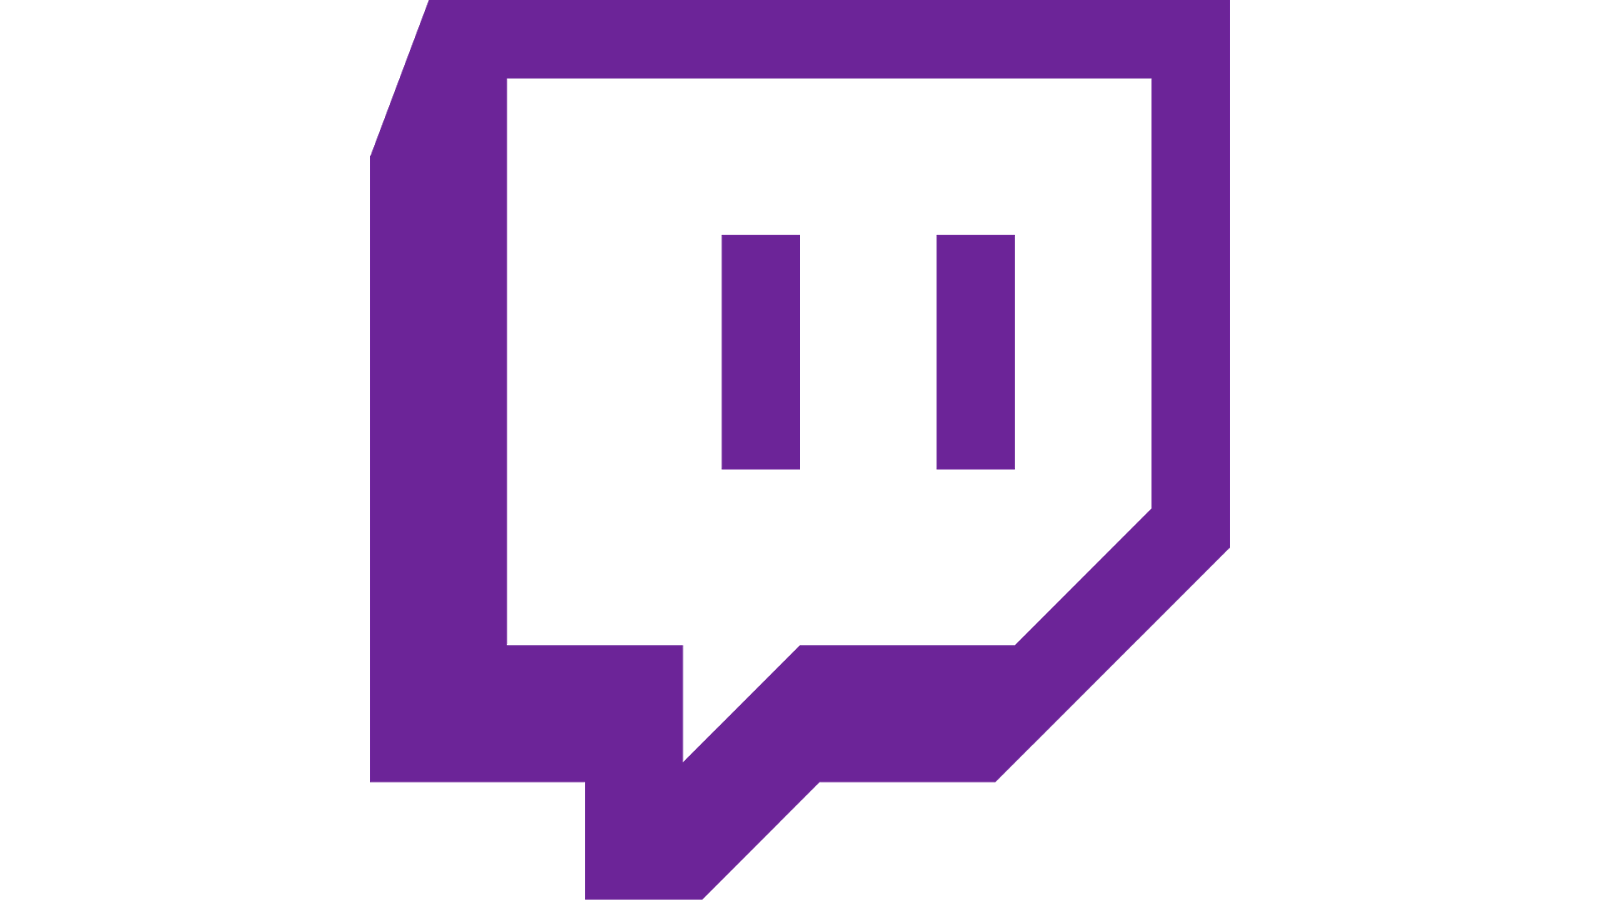 Watch livestream gaming videos Esports and any IRL broadcast on your Android device! Stream your favorite MMO RPG strategy and FPS games for PS4 PC